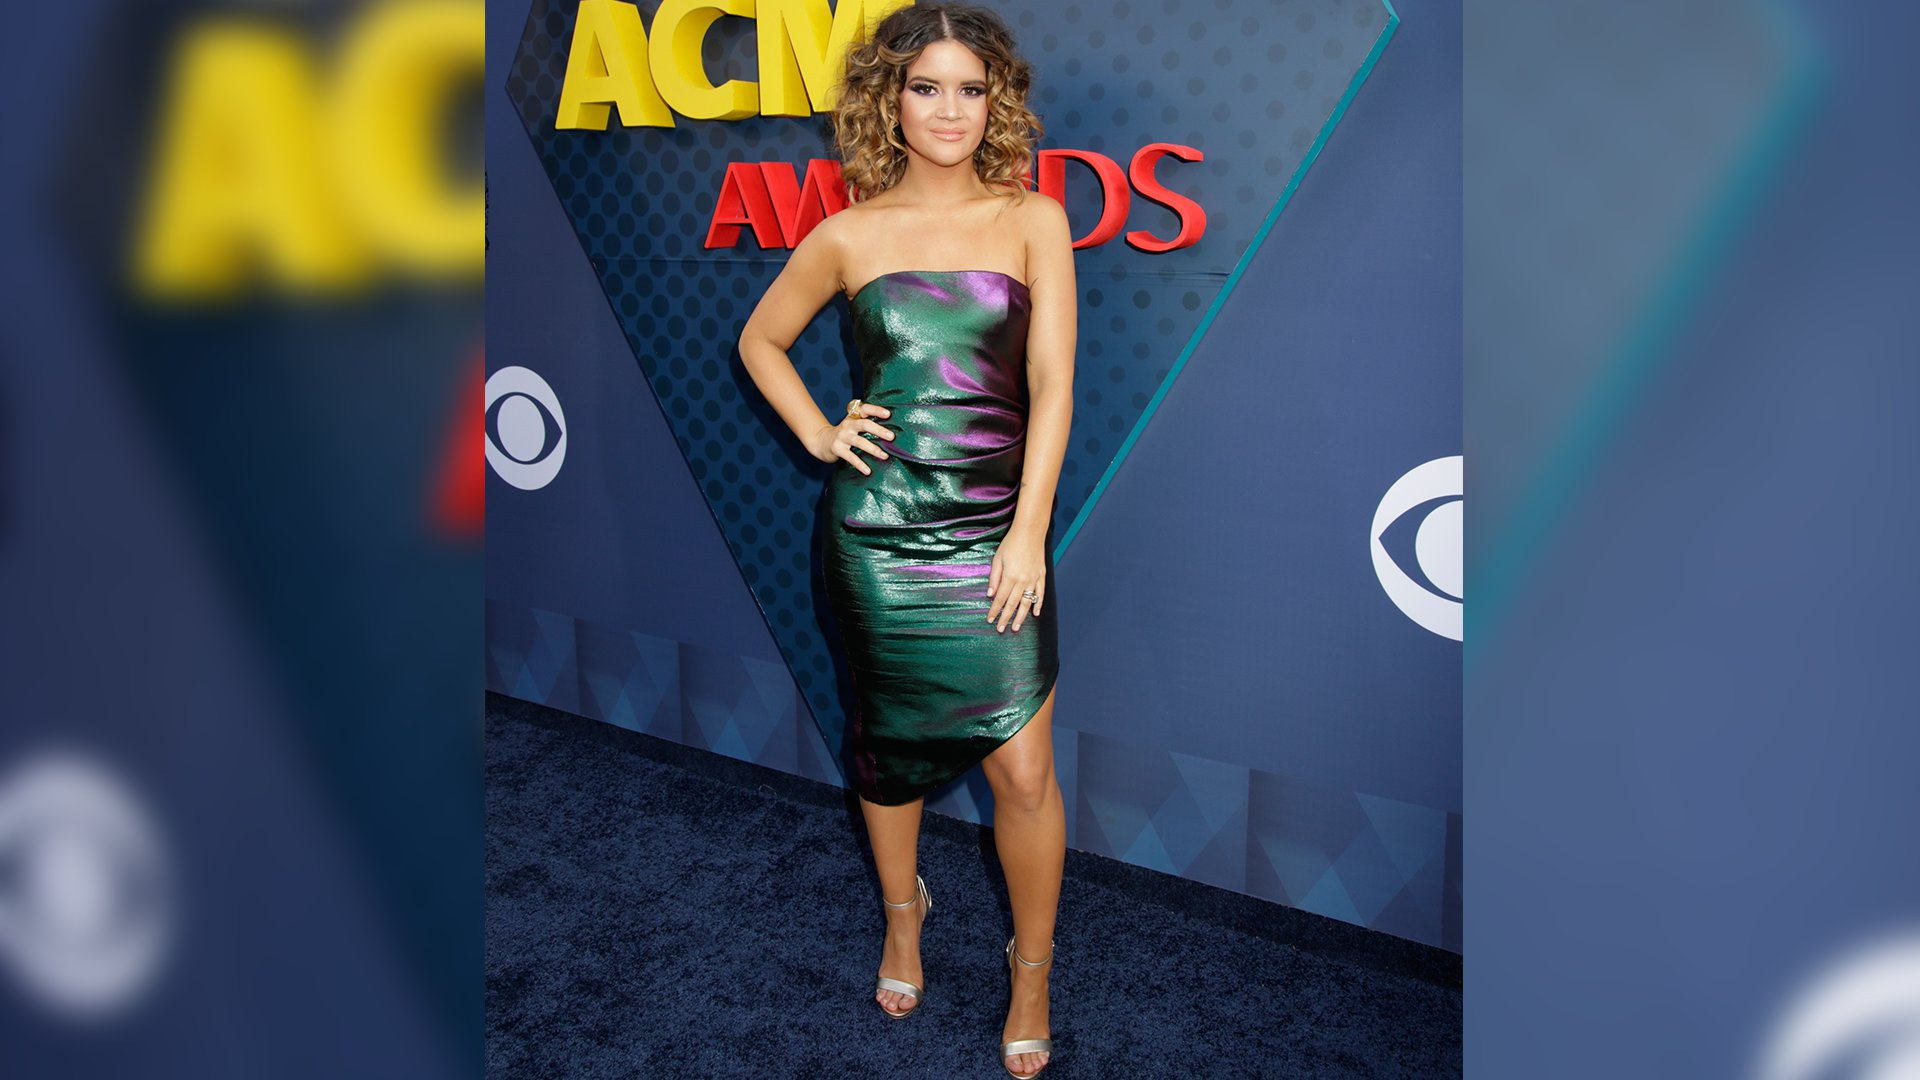 Maren Morris catches our eye in more ways than one while wearing this iridescent, strapless mini-dress.